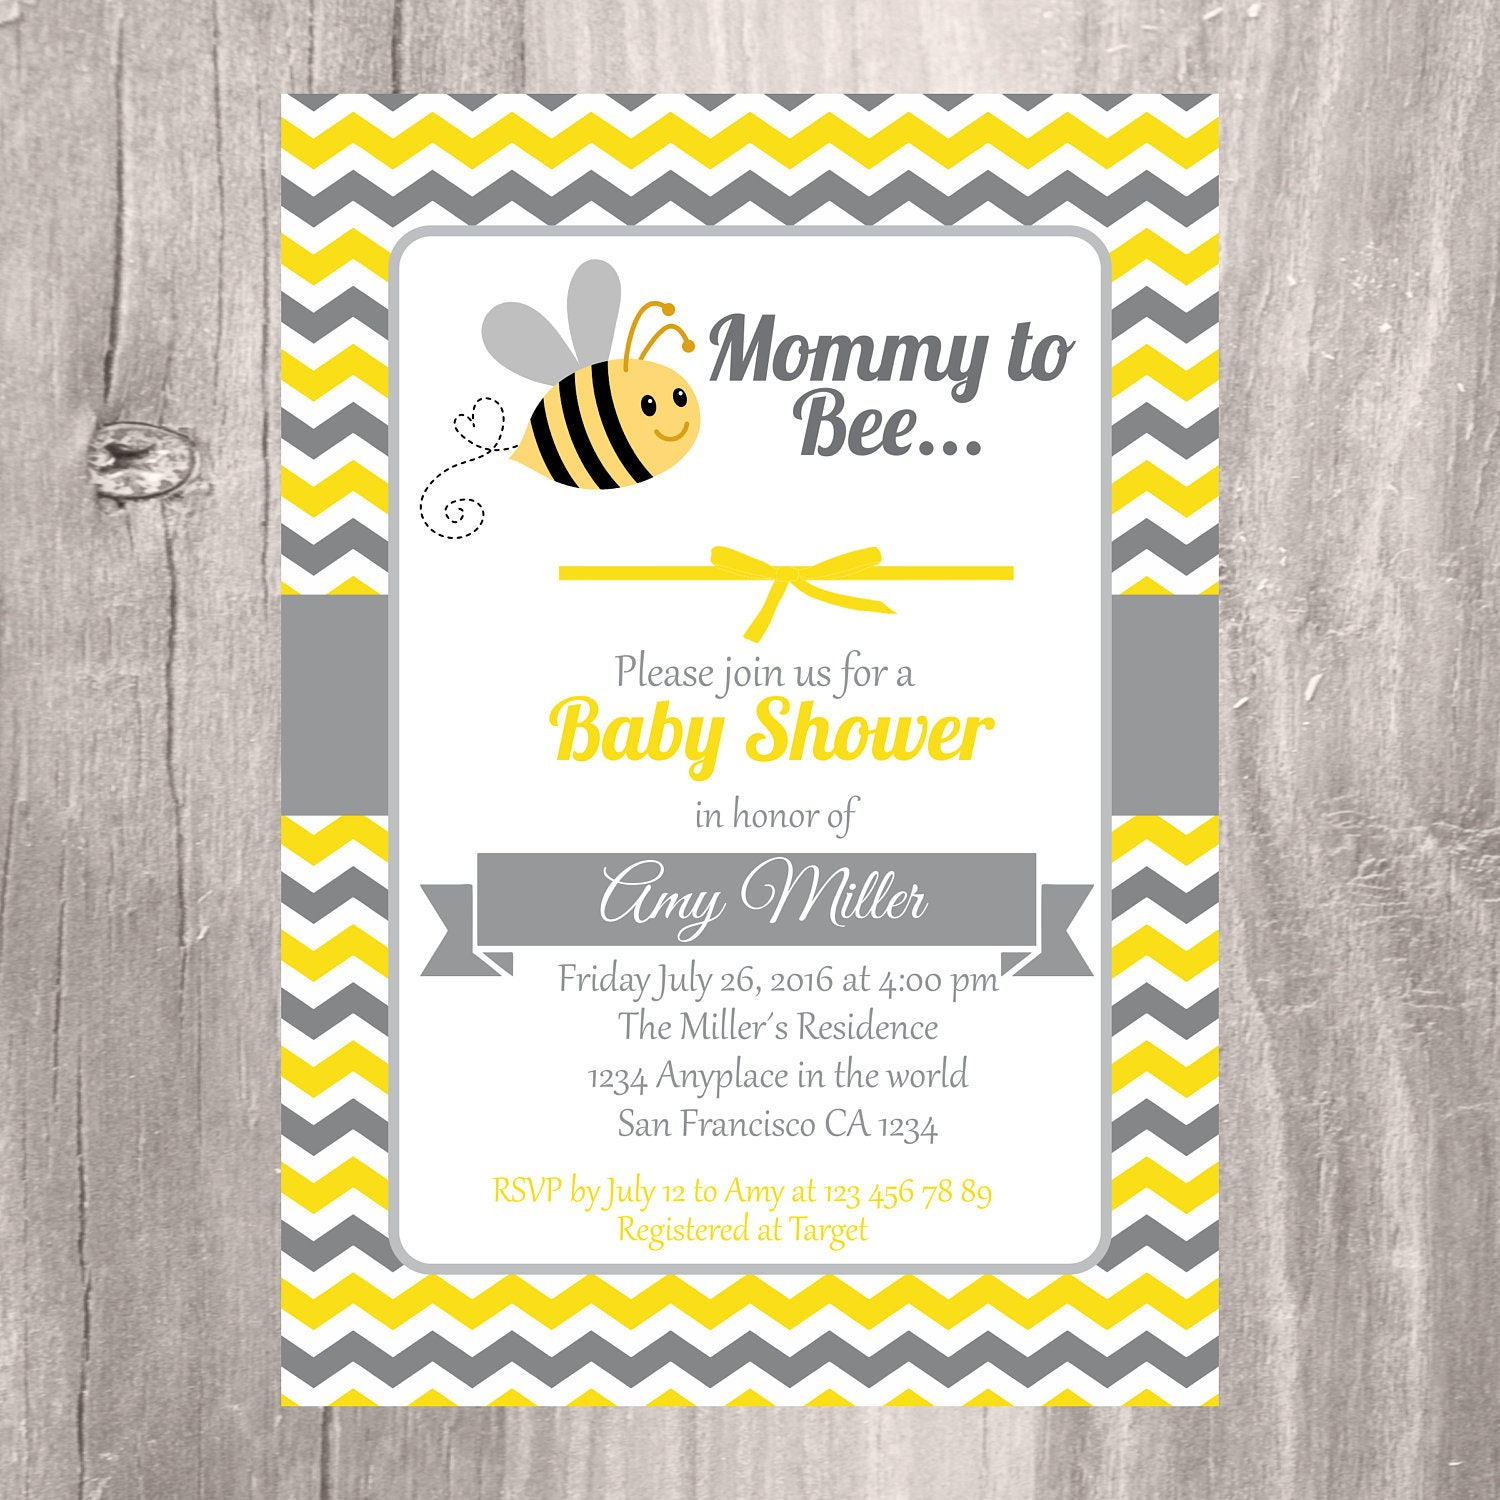 Baby Shower Invitation Printable Bumble Bee Baby Shower | Etsy